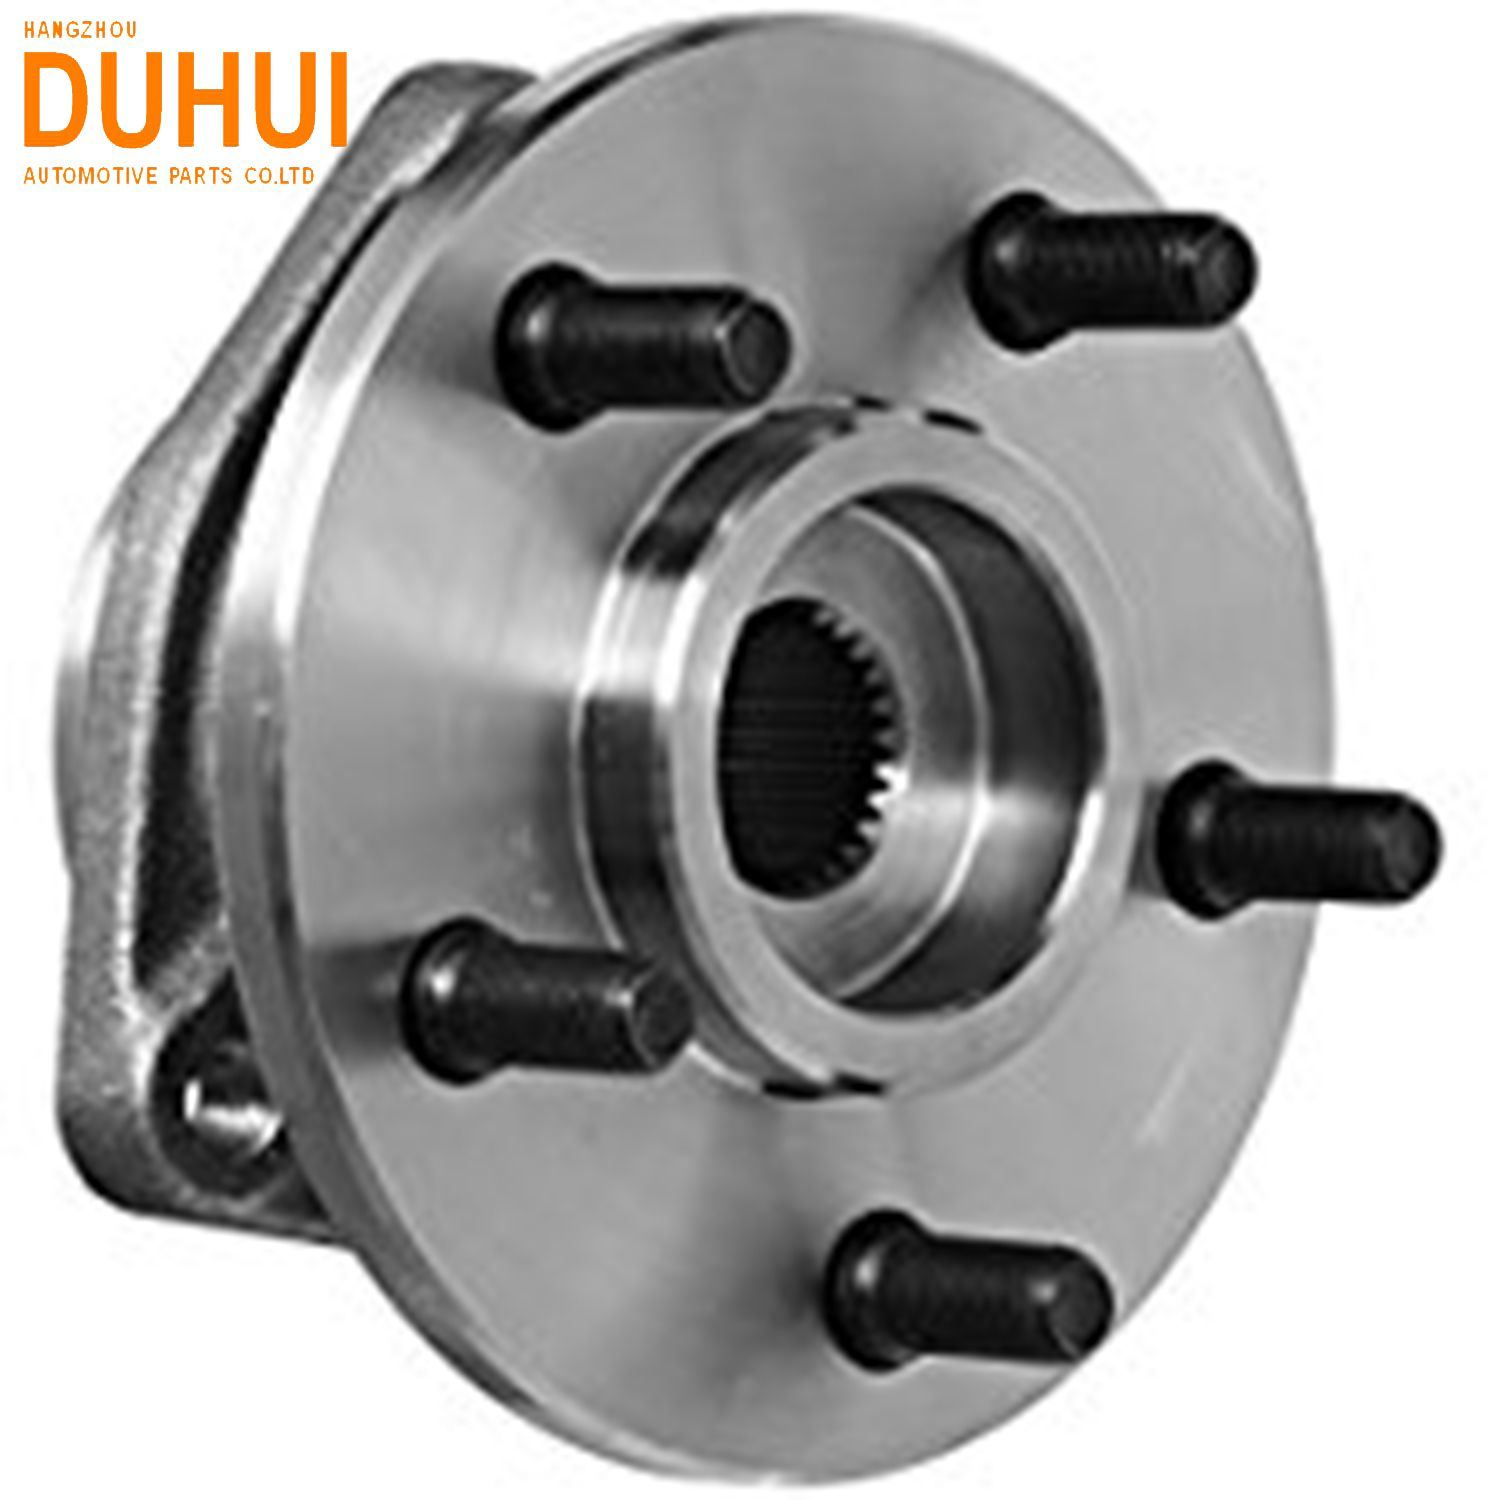 hight resolution of china supplier wheel hub bearing assembly for jeep cherokee jeep comanche jeep grand cherokee jeep wrangler china auto spare part automobile parts